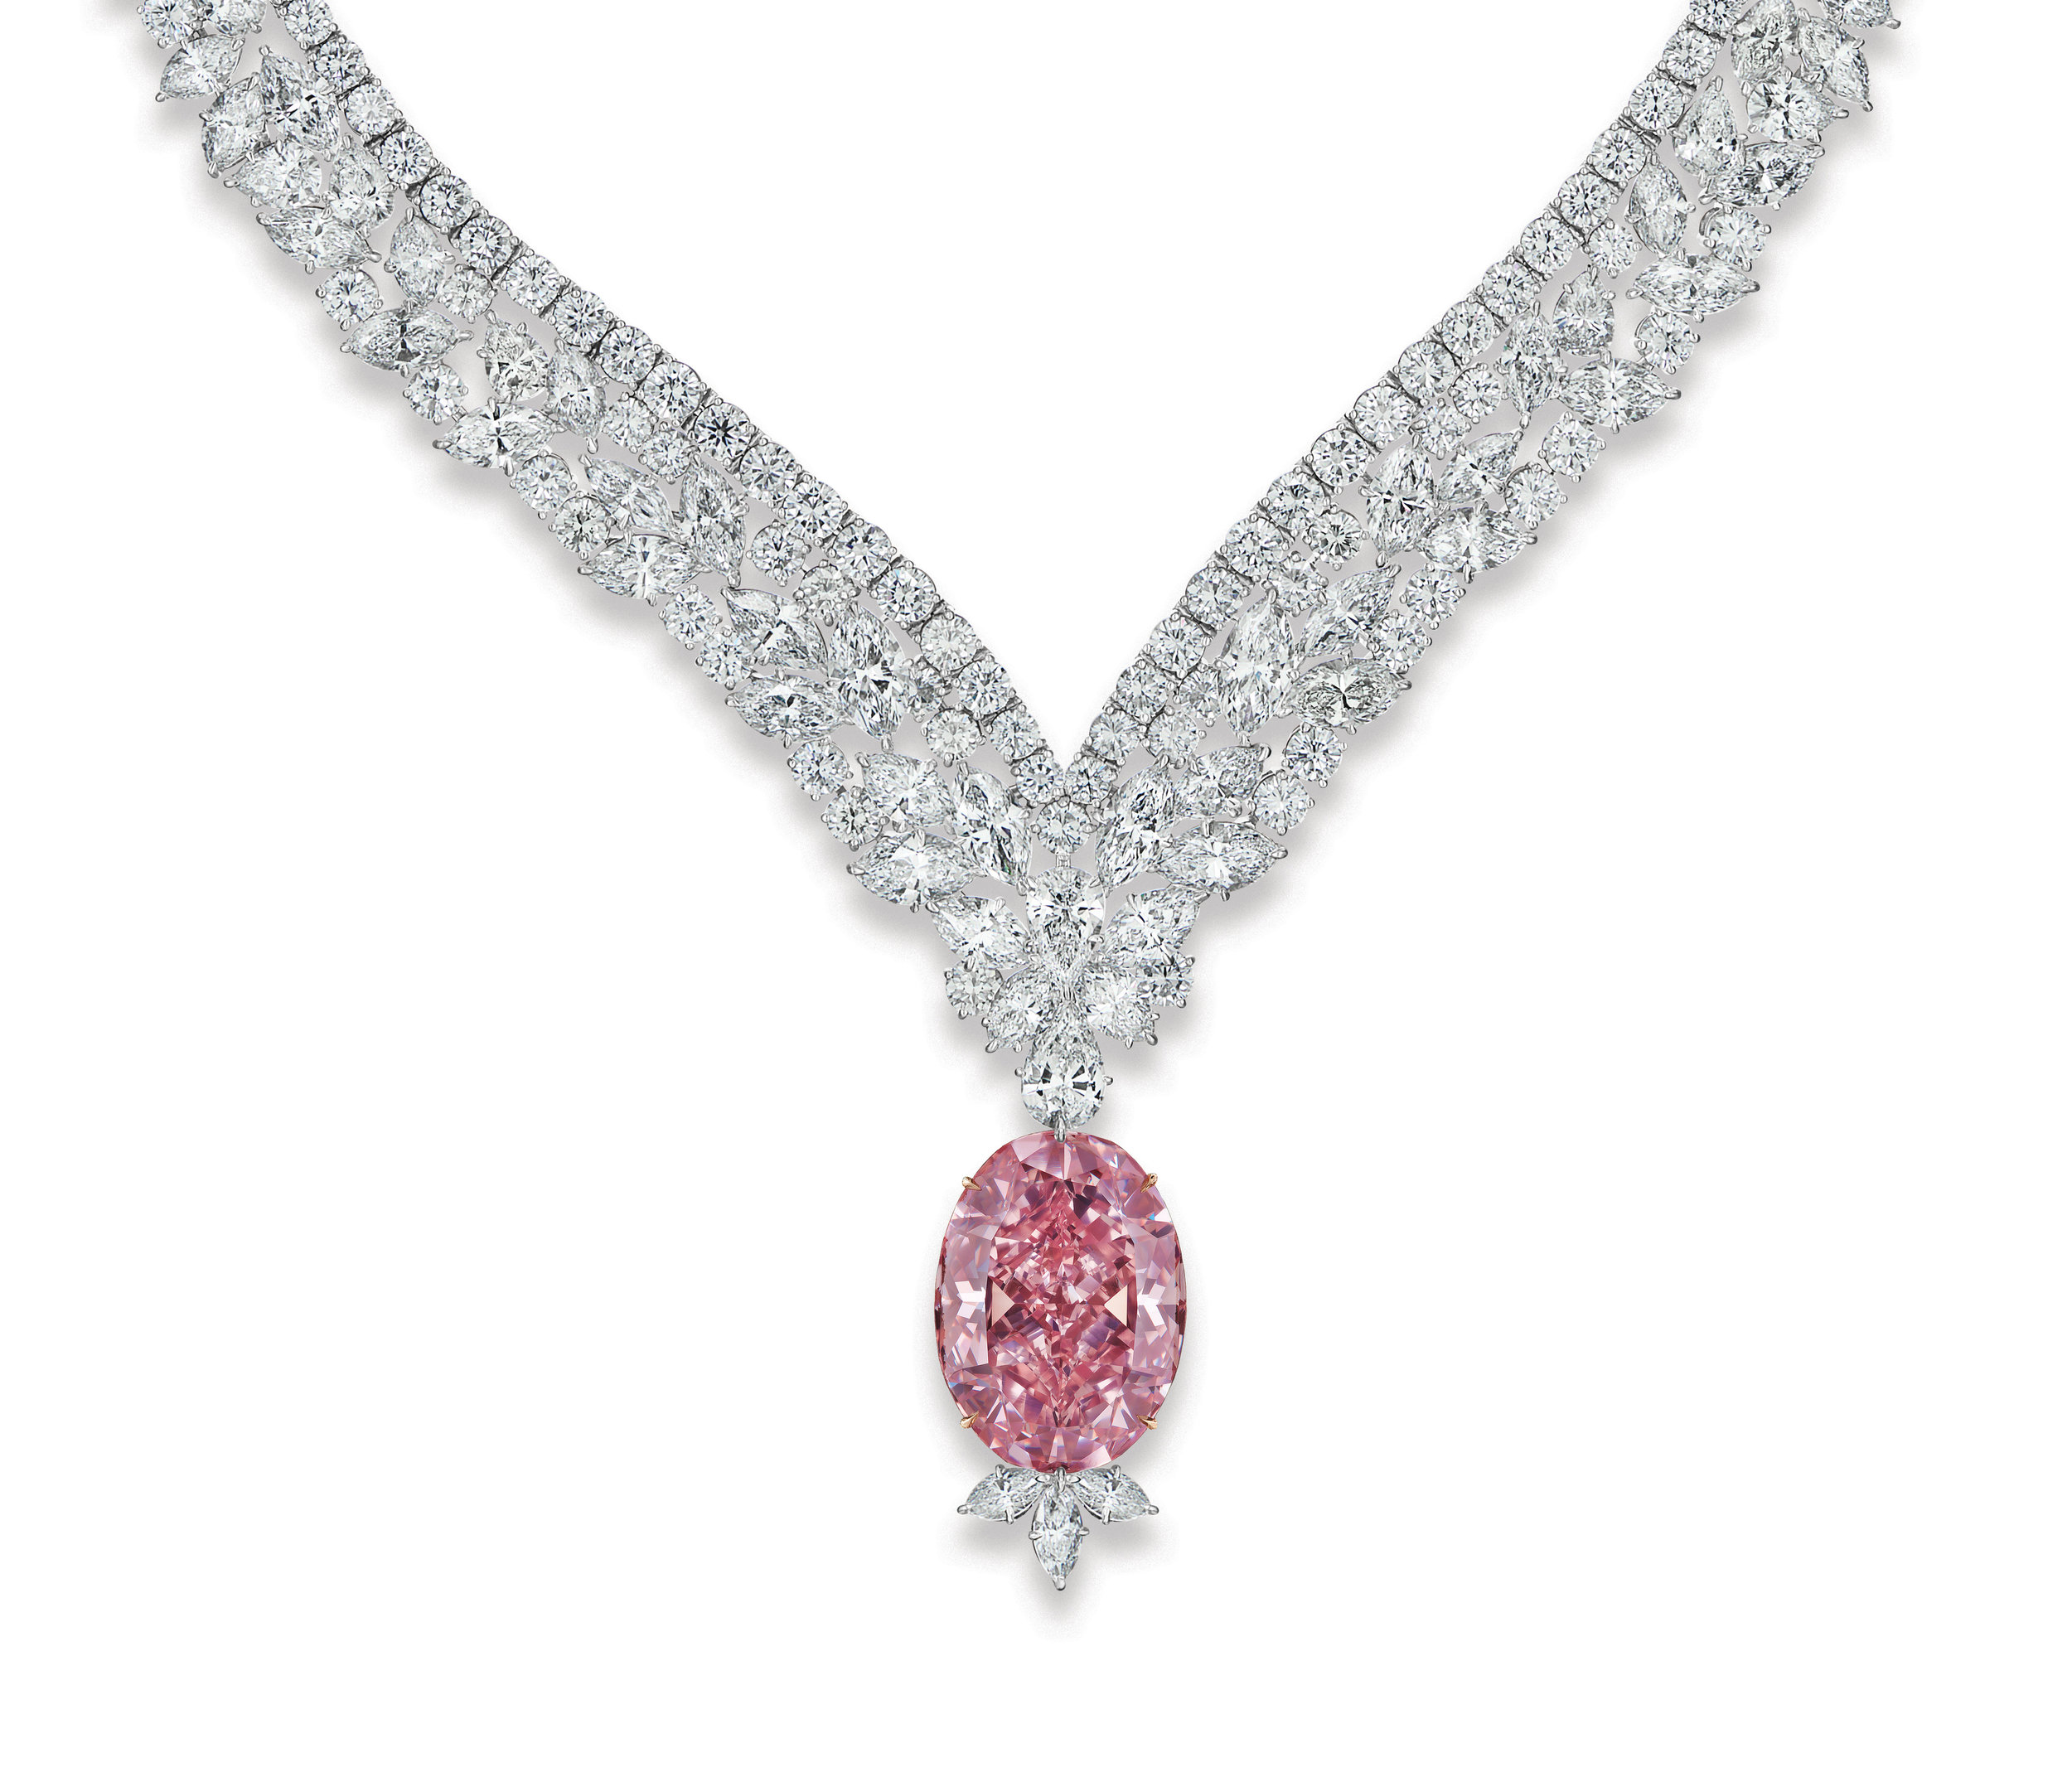 The Juliet Pink Diamond Necklace